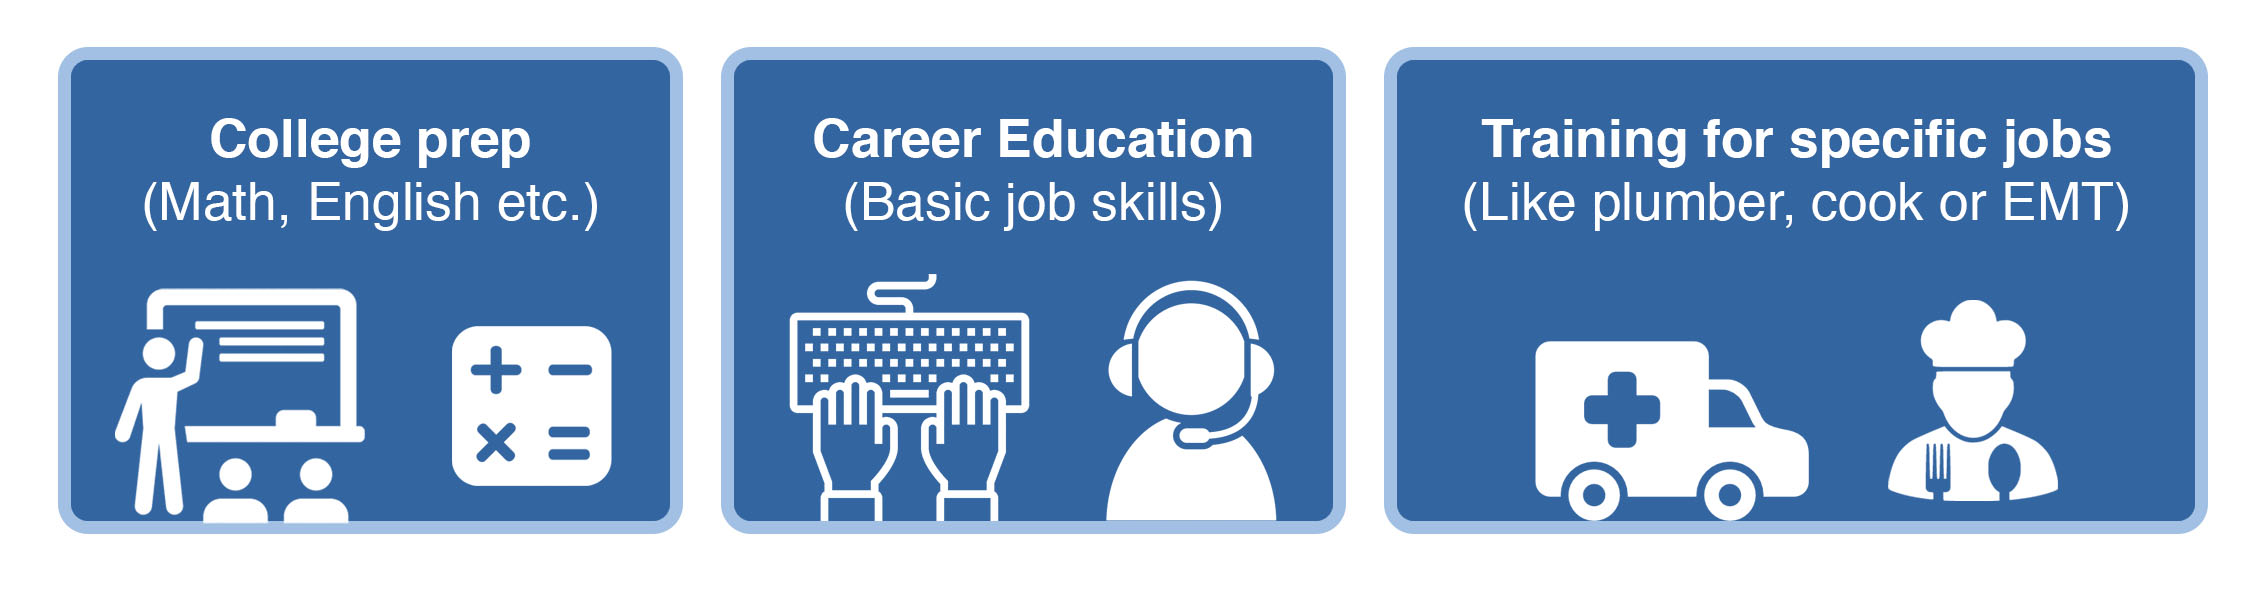 Image with the subject 'What classes do you take? Above the text 'College prep (math, english, etc.) Career Education (Basic Job Skills), Training for specific jobs (Like plumber, cook or EMT)'